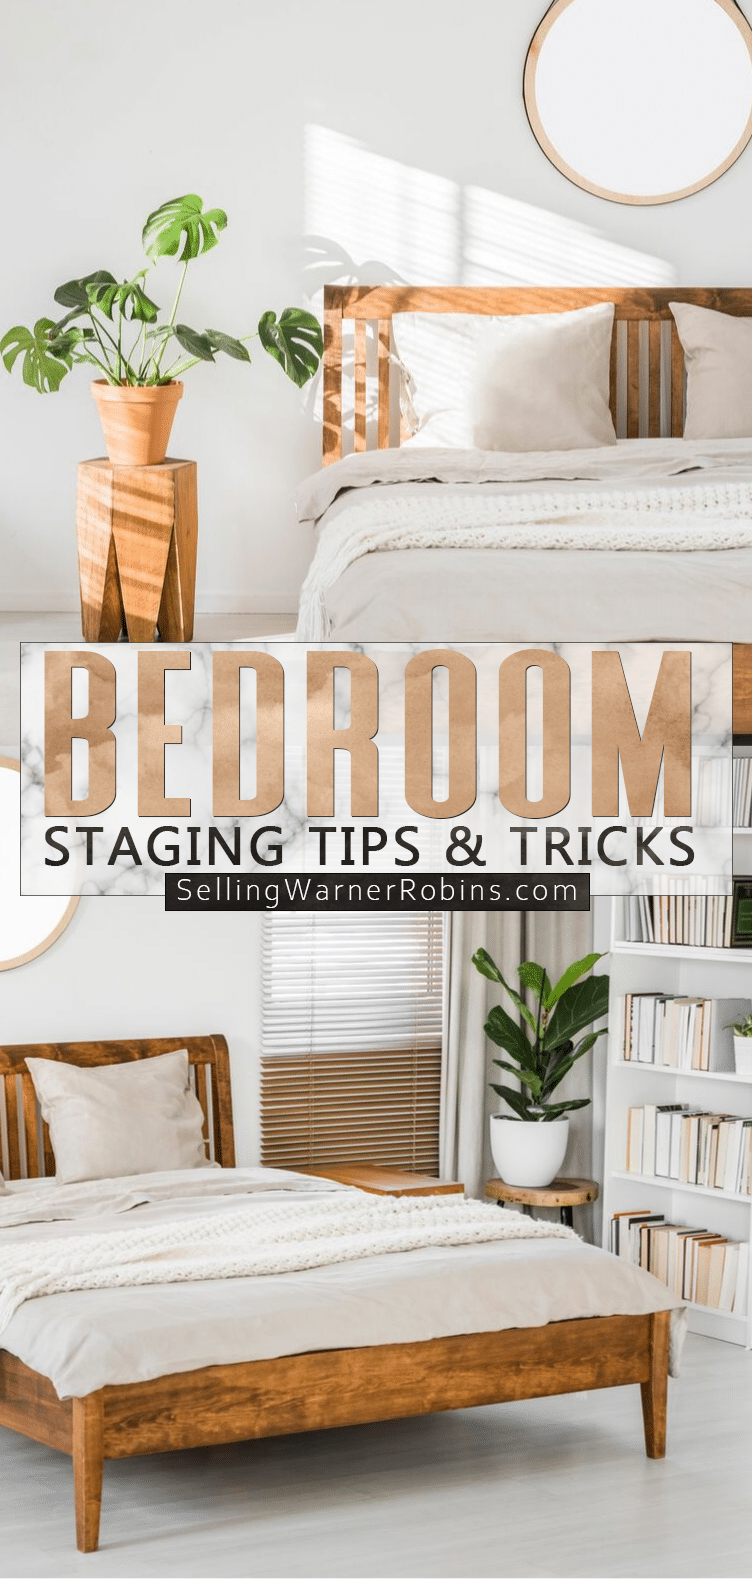 Bedroom Staging Tips and Tricks